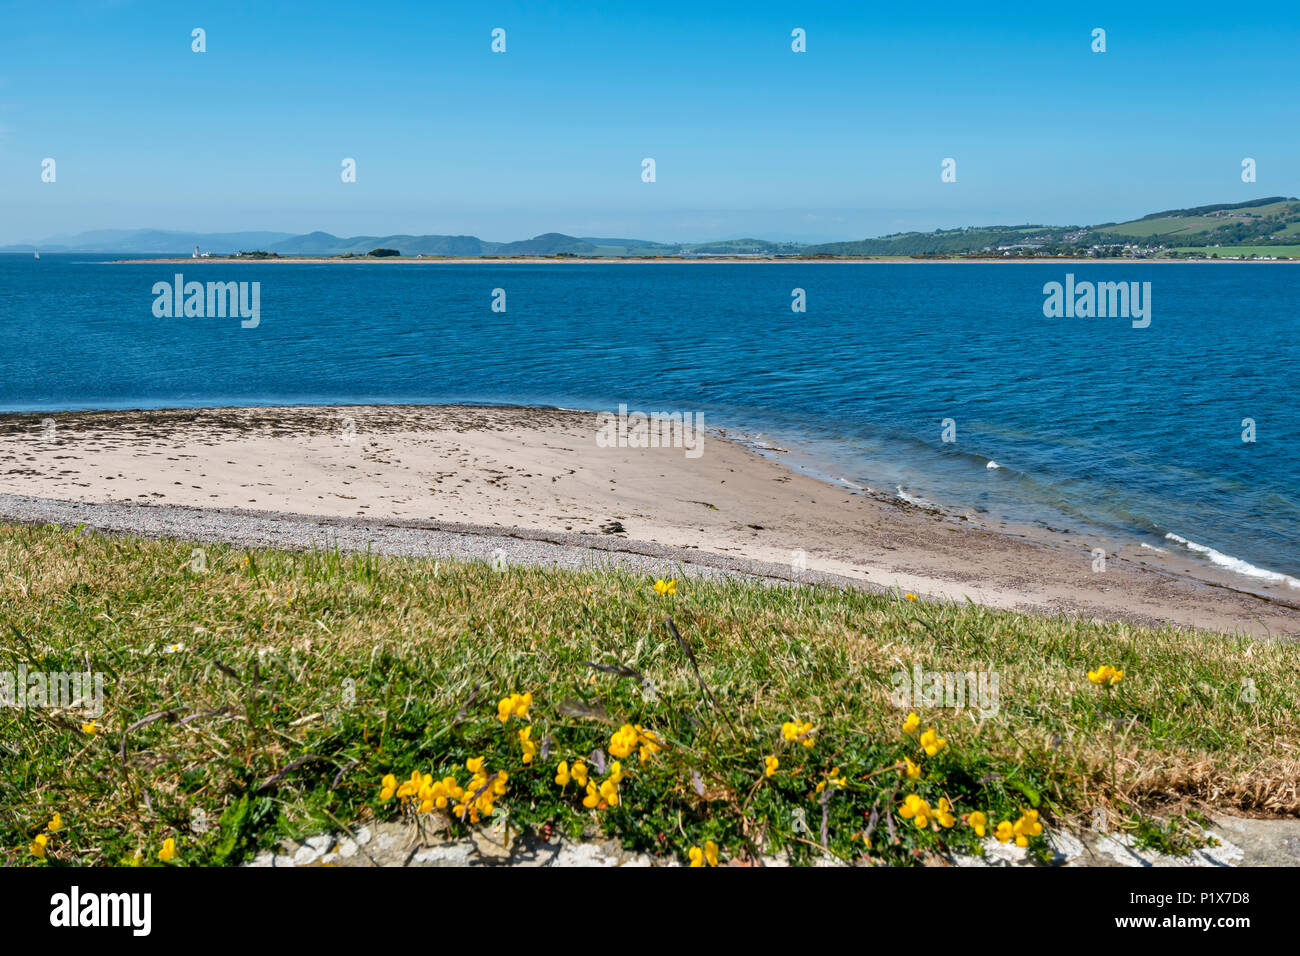 FORT GEORGE ARDERSIER INVERNESS SCOTLAND VIEW FROM FORT ACROSS MORAY FIRTH TOWARDS LIGHTHOUSE ON CHANONRY POINT - Stock Image